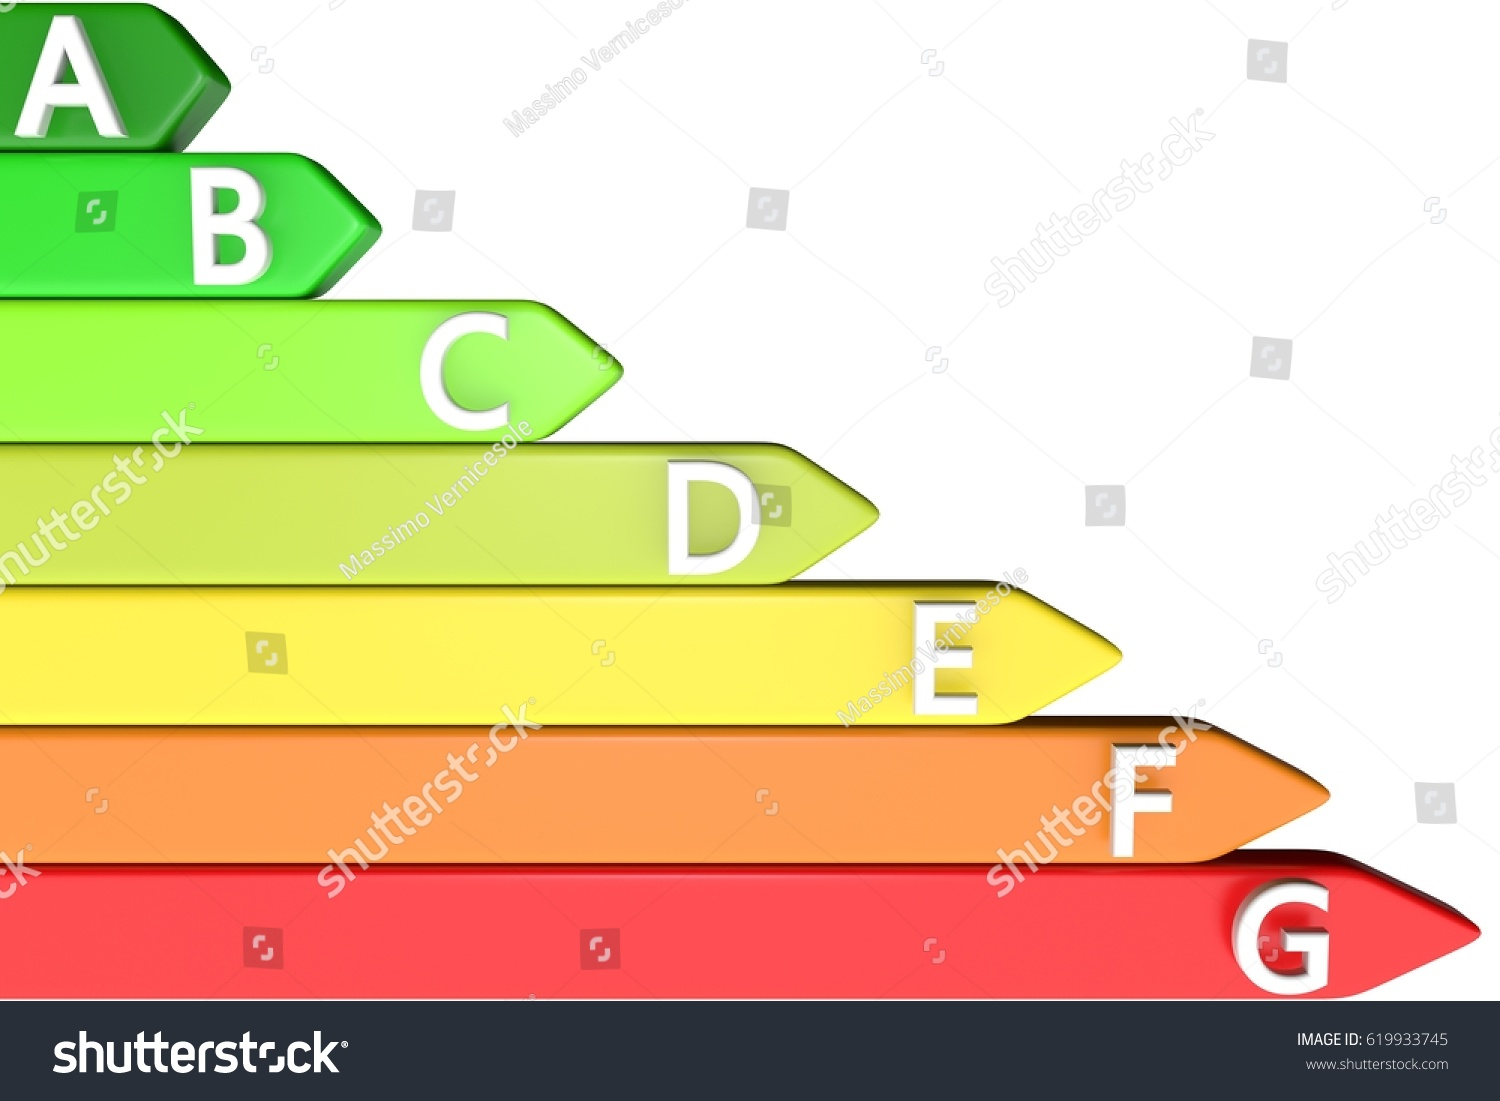 The color yellow symbolizes gallery symbol and sign ideas 3d illustration color chart green yellow stock illustration 3d illustration the color chart green yellow orange geenschuldenfo Images